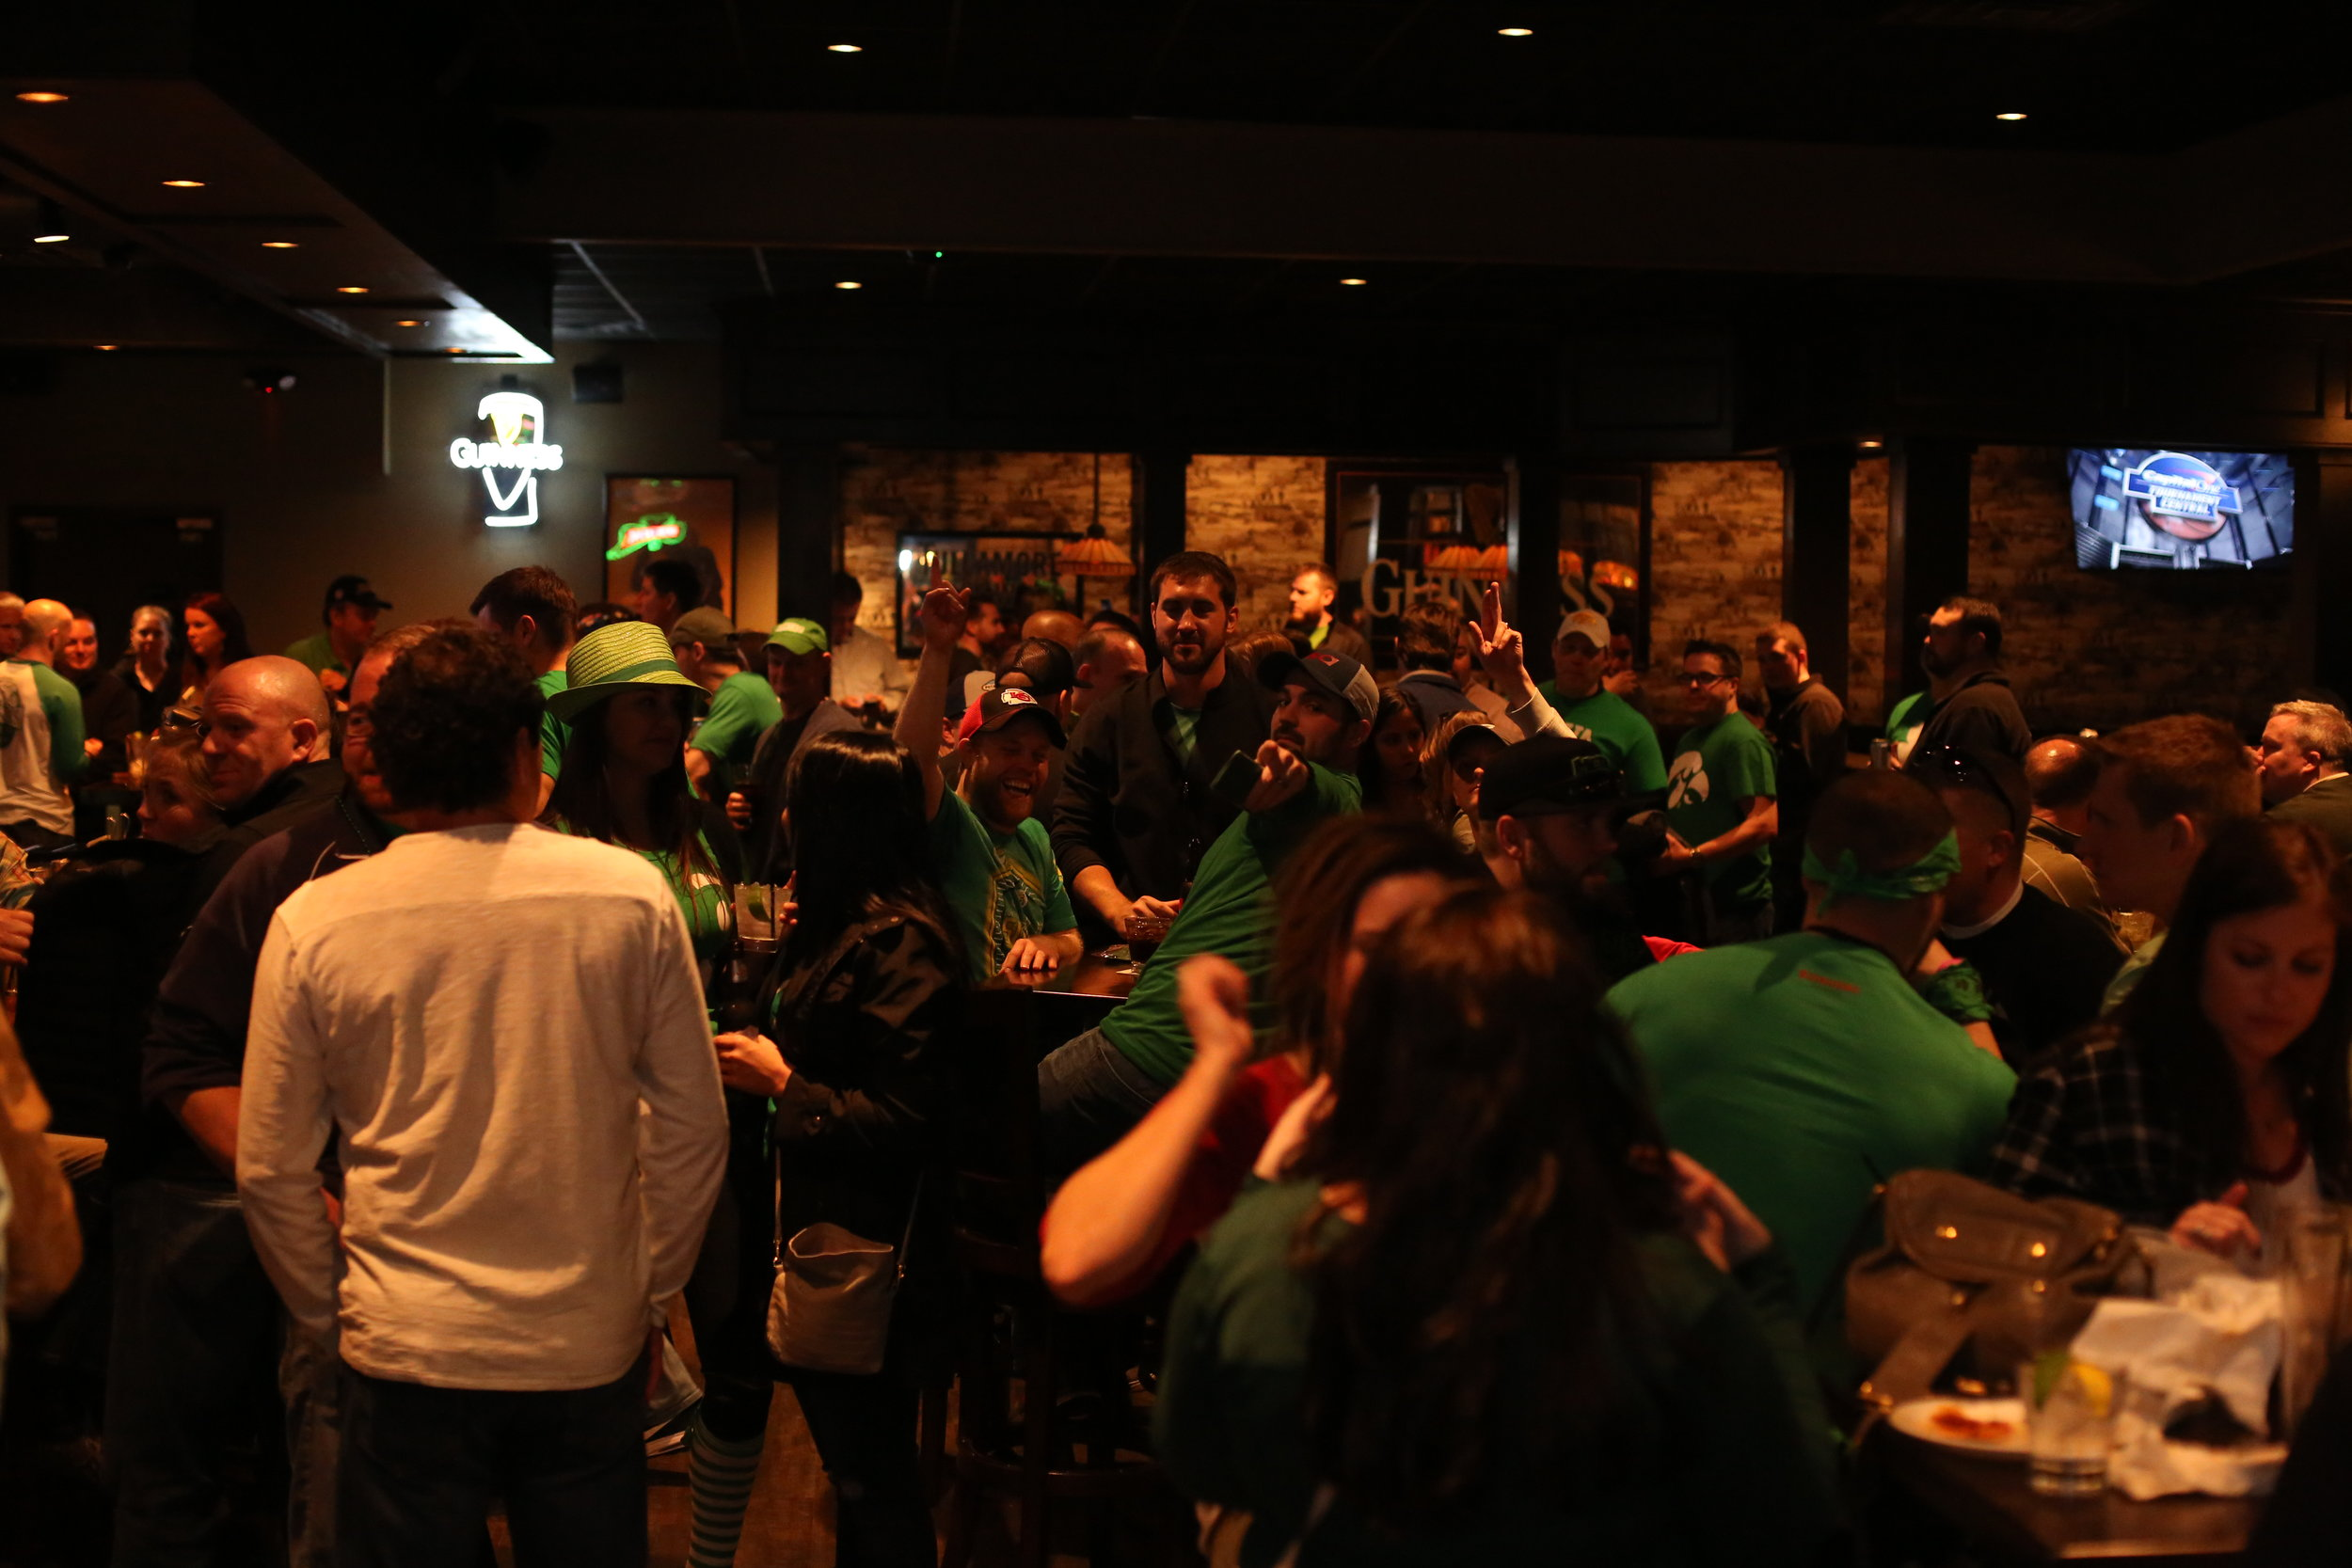 St. Patrick's Day in the West Glen Town Center